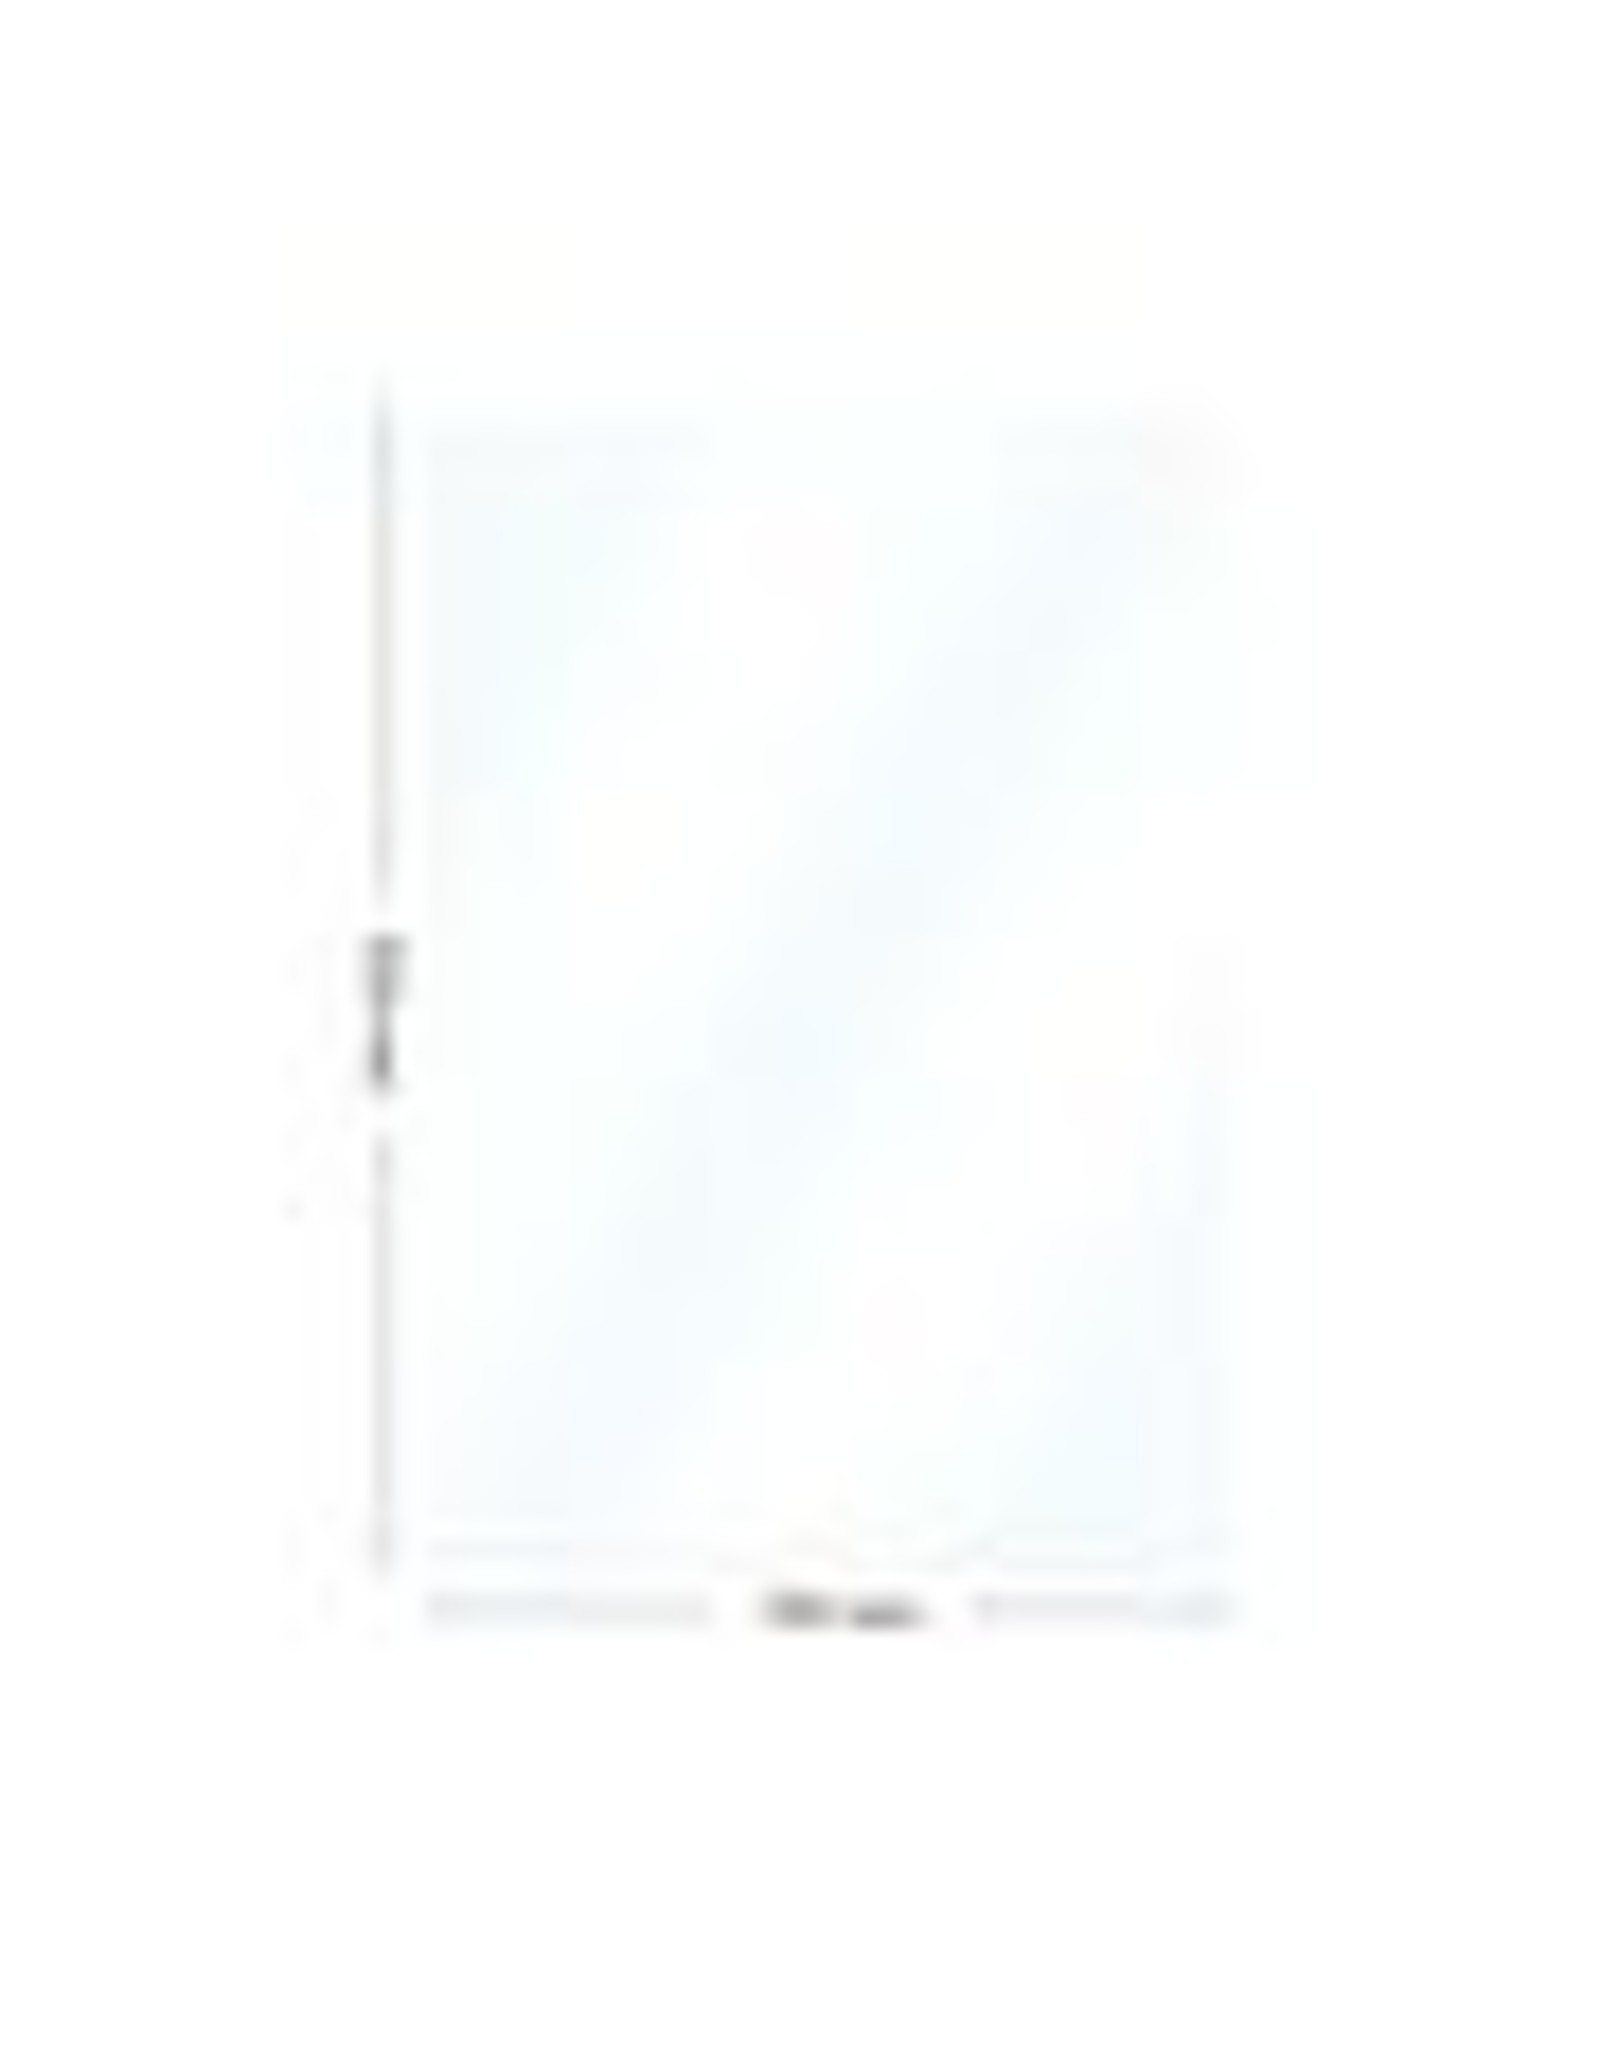 Anycubic Anycubic Photon FEP Film 140x200mm